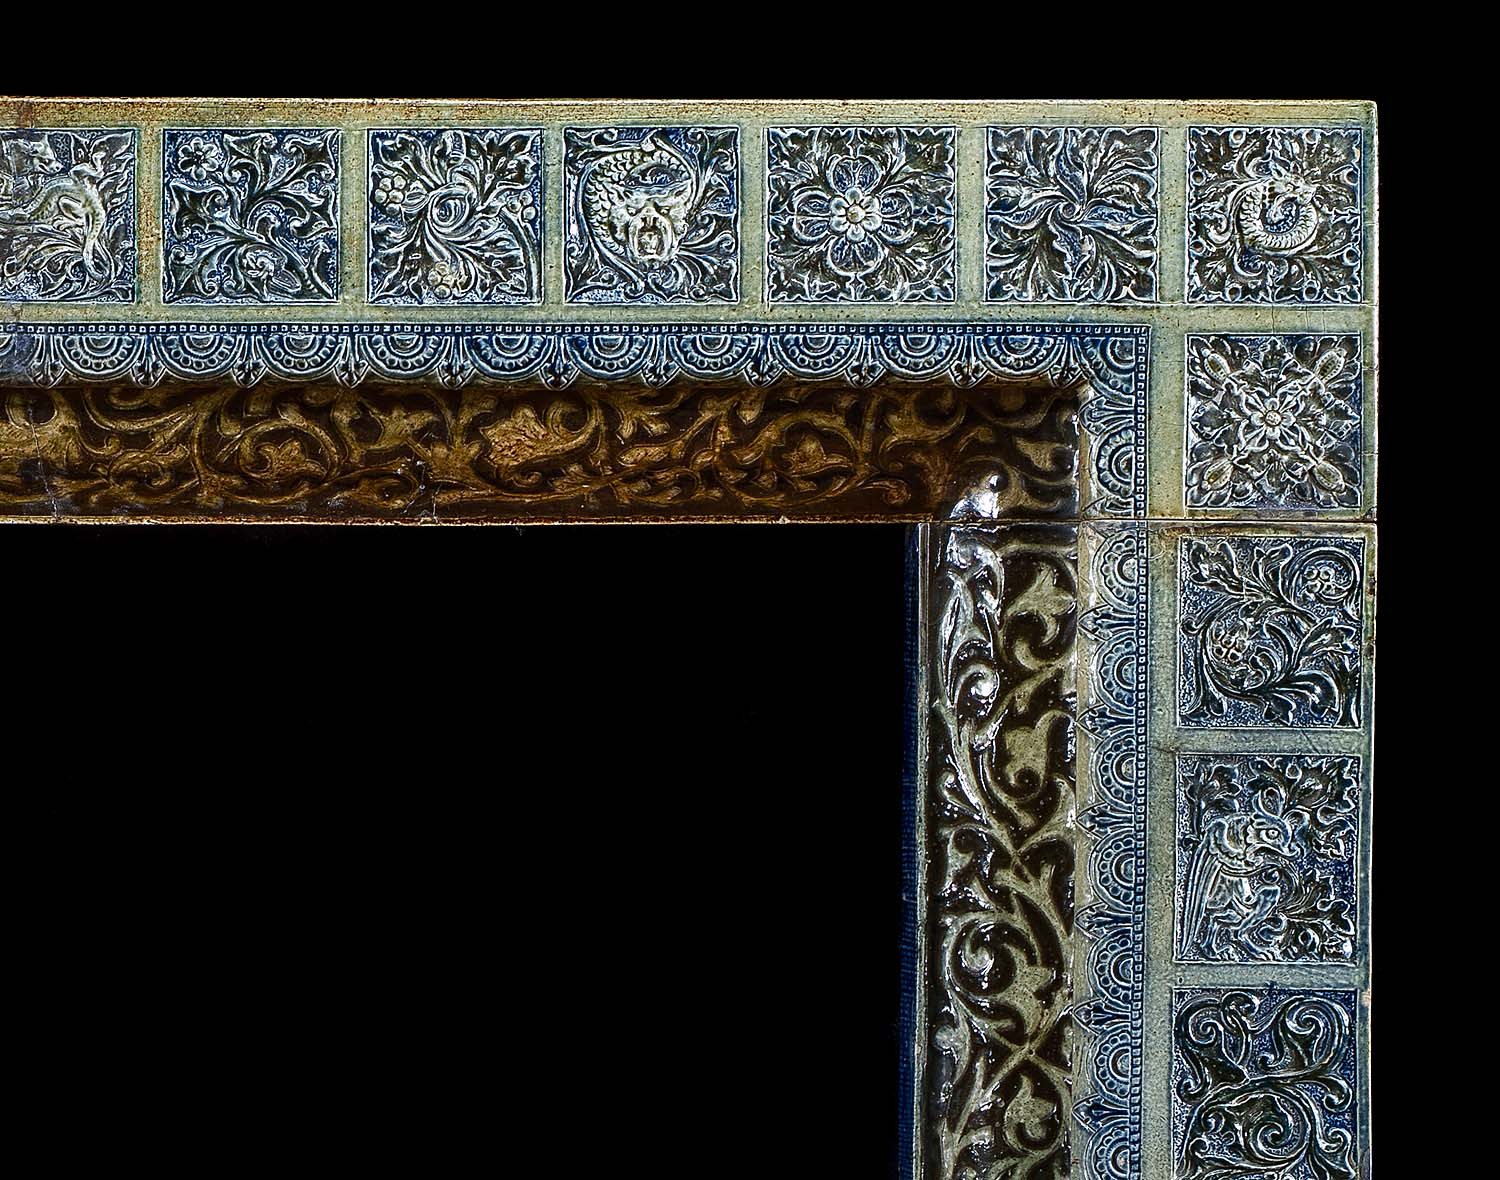 Martinware ceramic fireplace surround